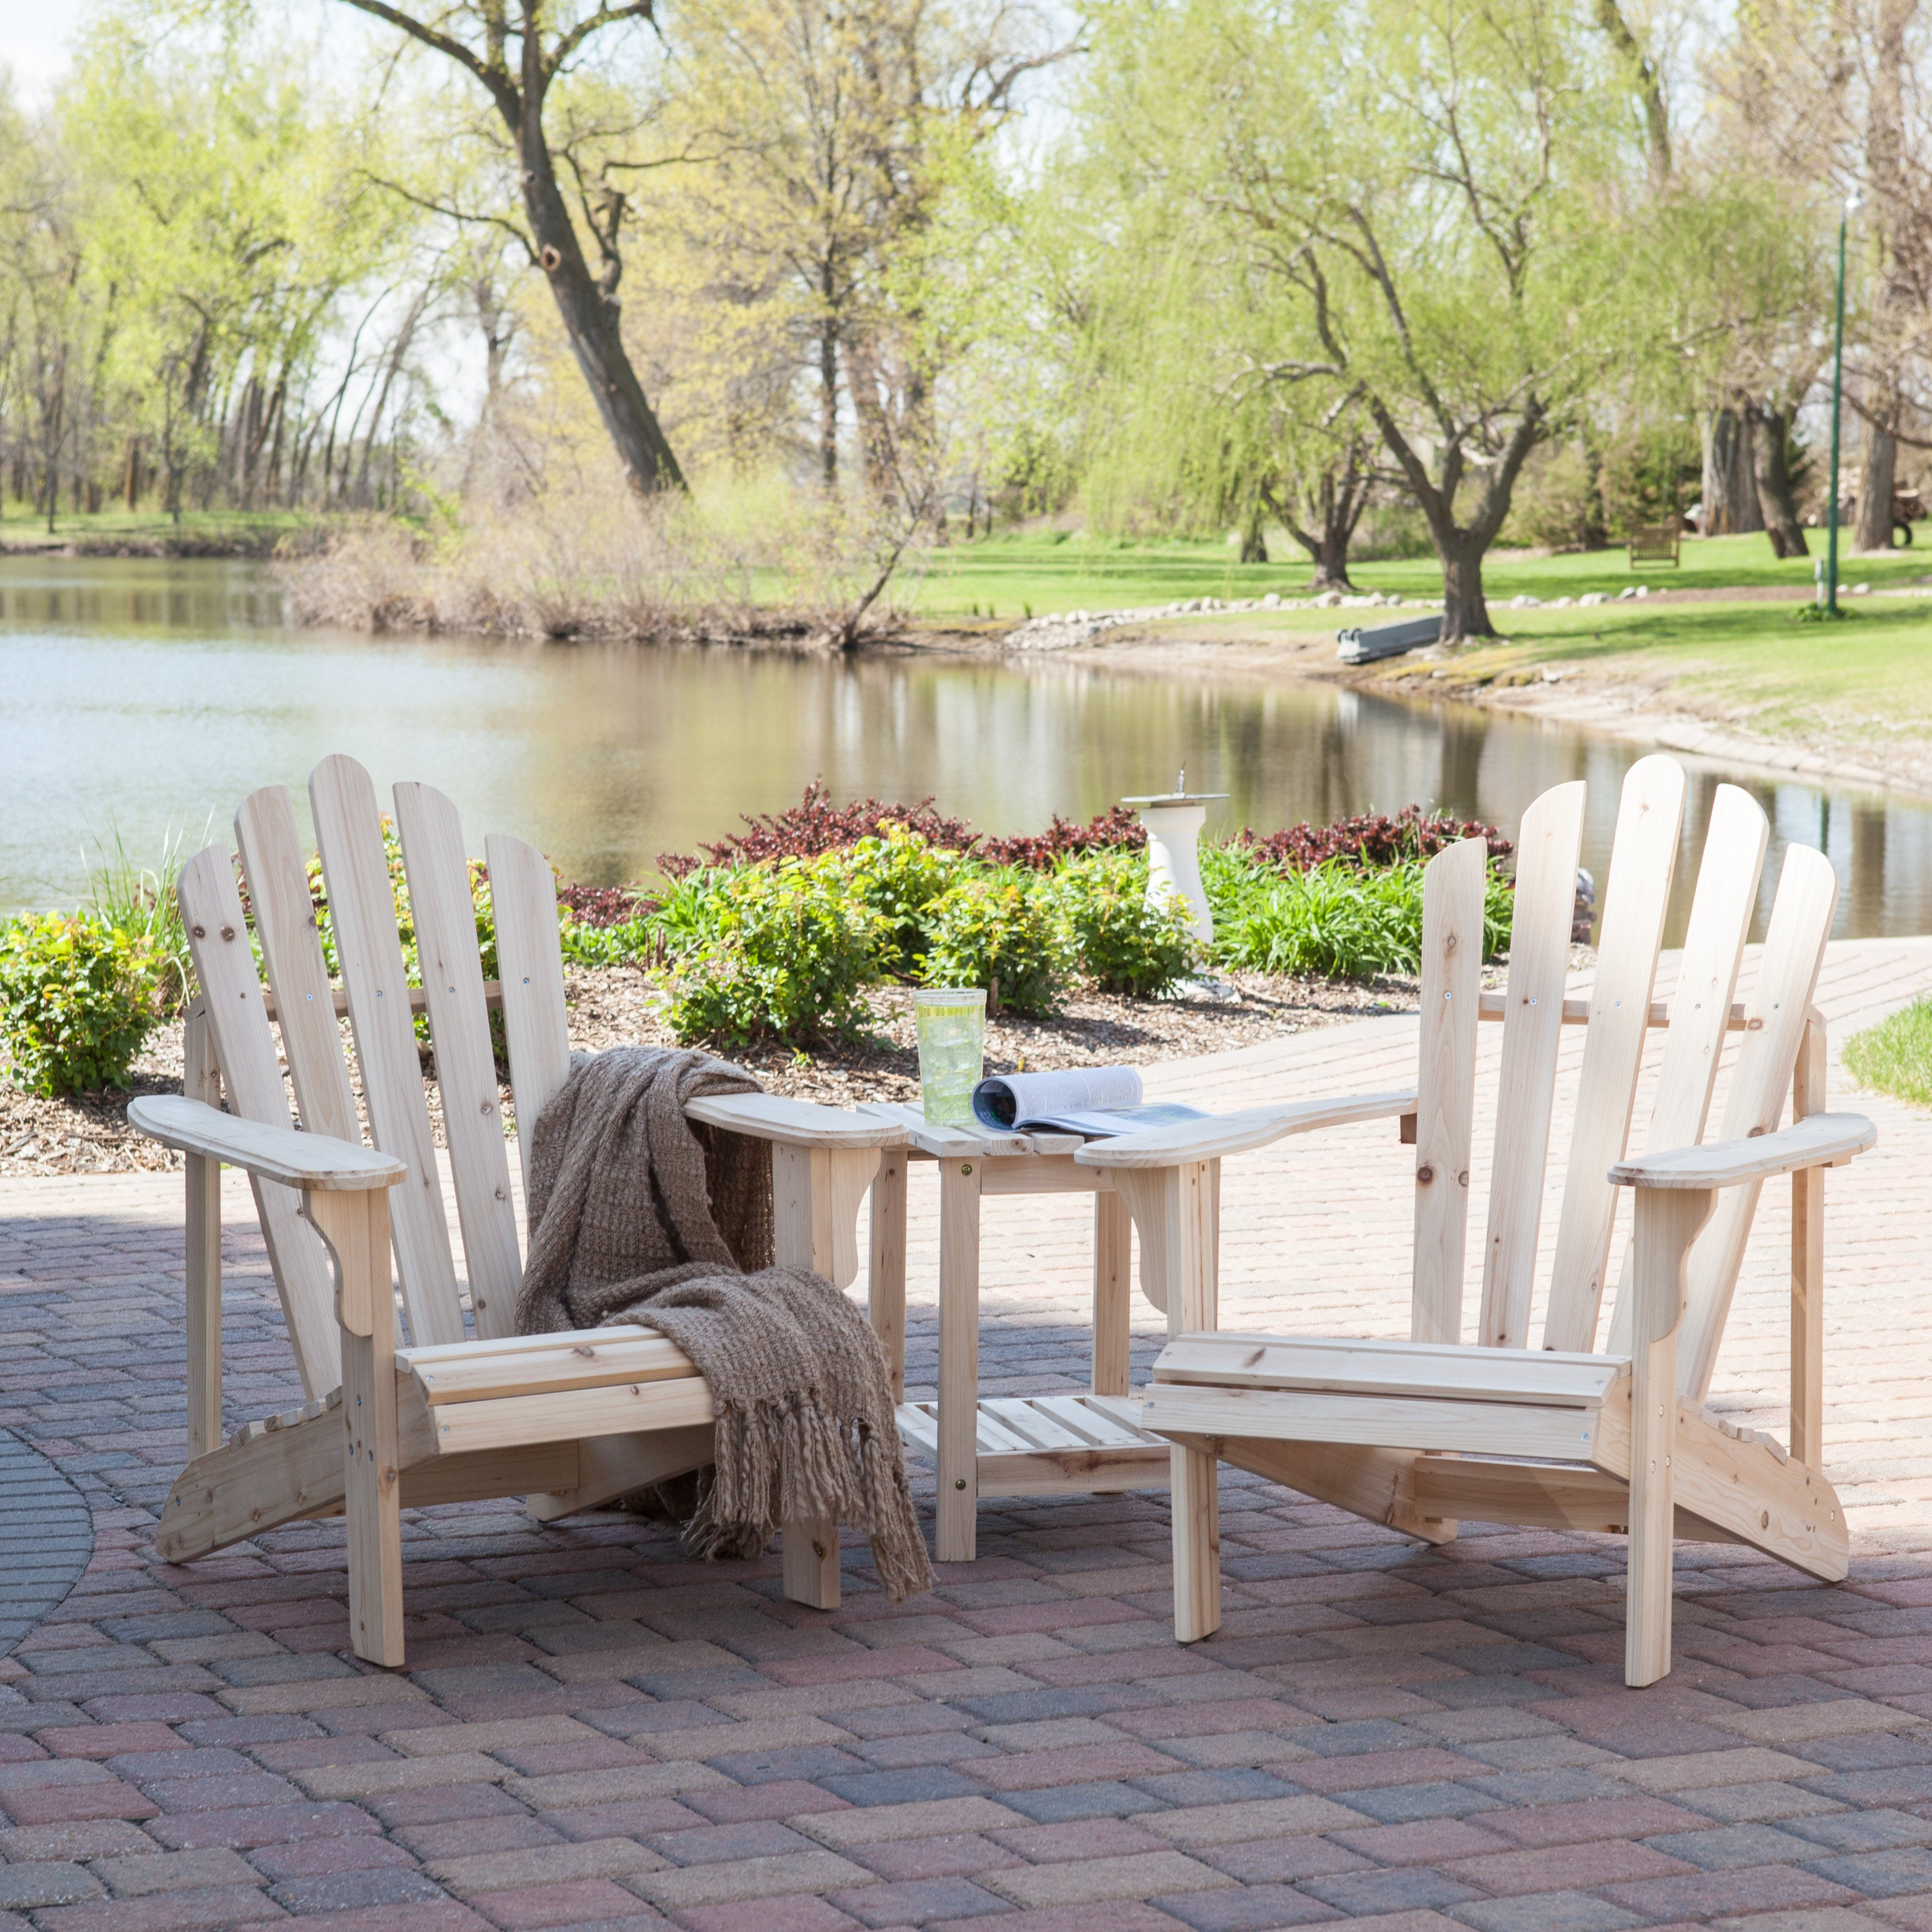 Coral Coast Hubbard Adirondack 2 Chair Set With FREE Side Table    Unfinished   Walmart.com